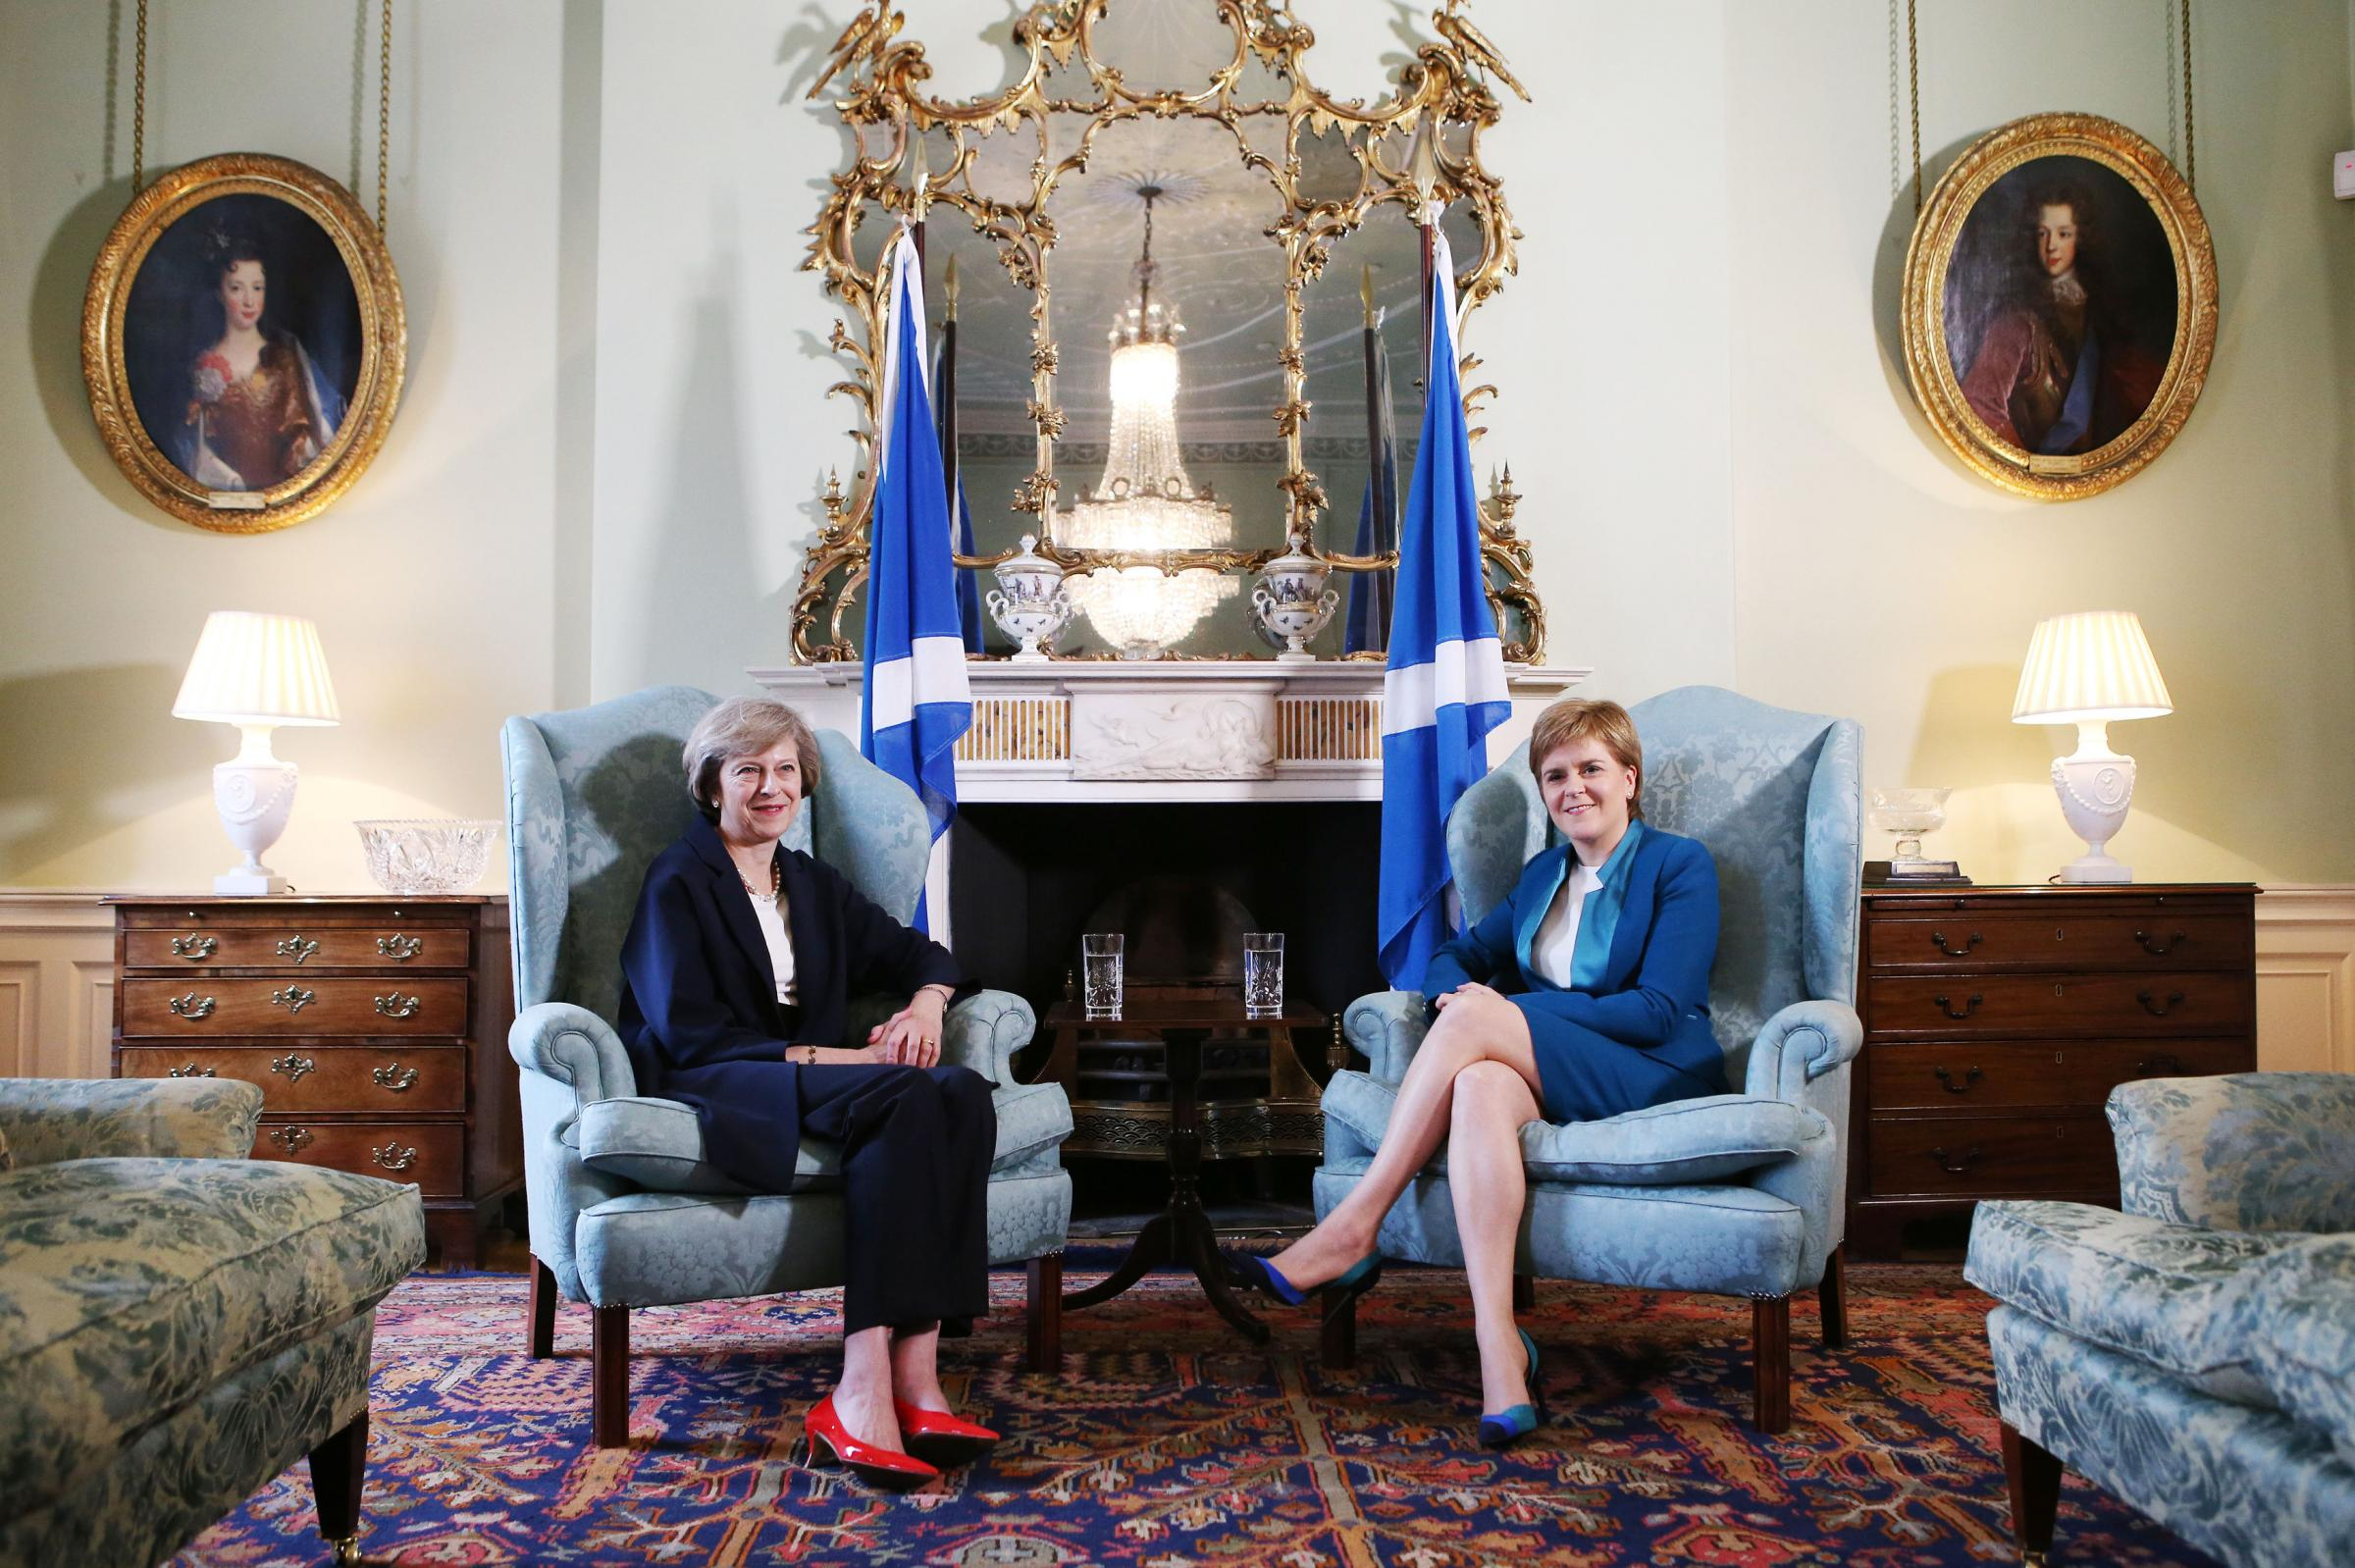 Prime Minister Theresa May (left) meets with Scotland's First Minister Nicola Sturgeon at Bute House in Edinburgh. PRESS ASSOCIATION Photo. Picture date: Friday July 15, 2016. See PA story POLITICS Conservatives. Photo credit should read: Andrew Milli